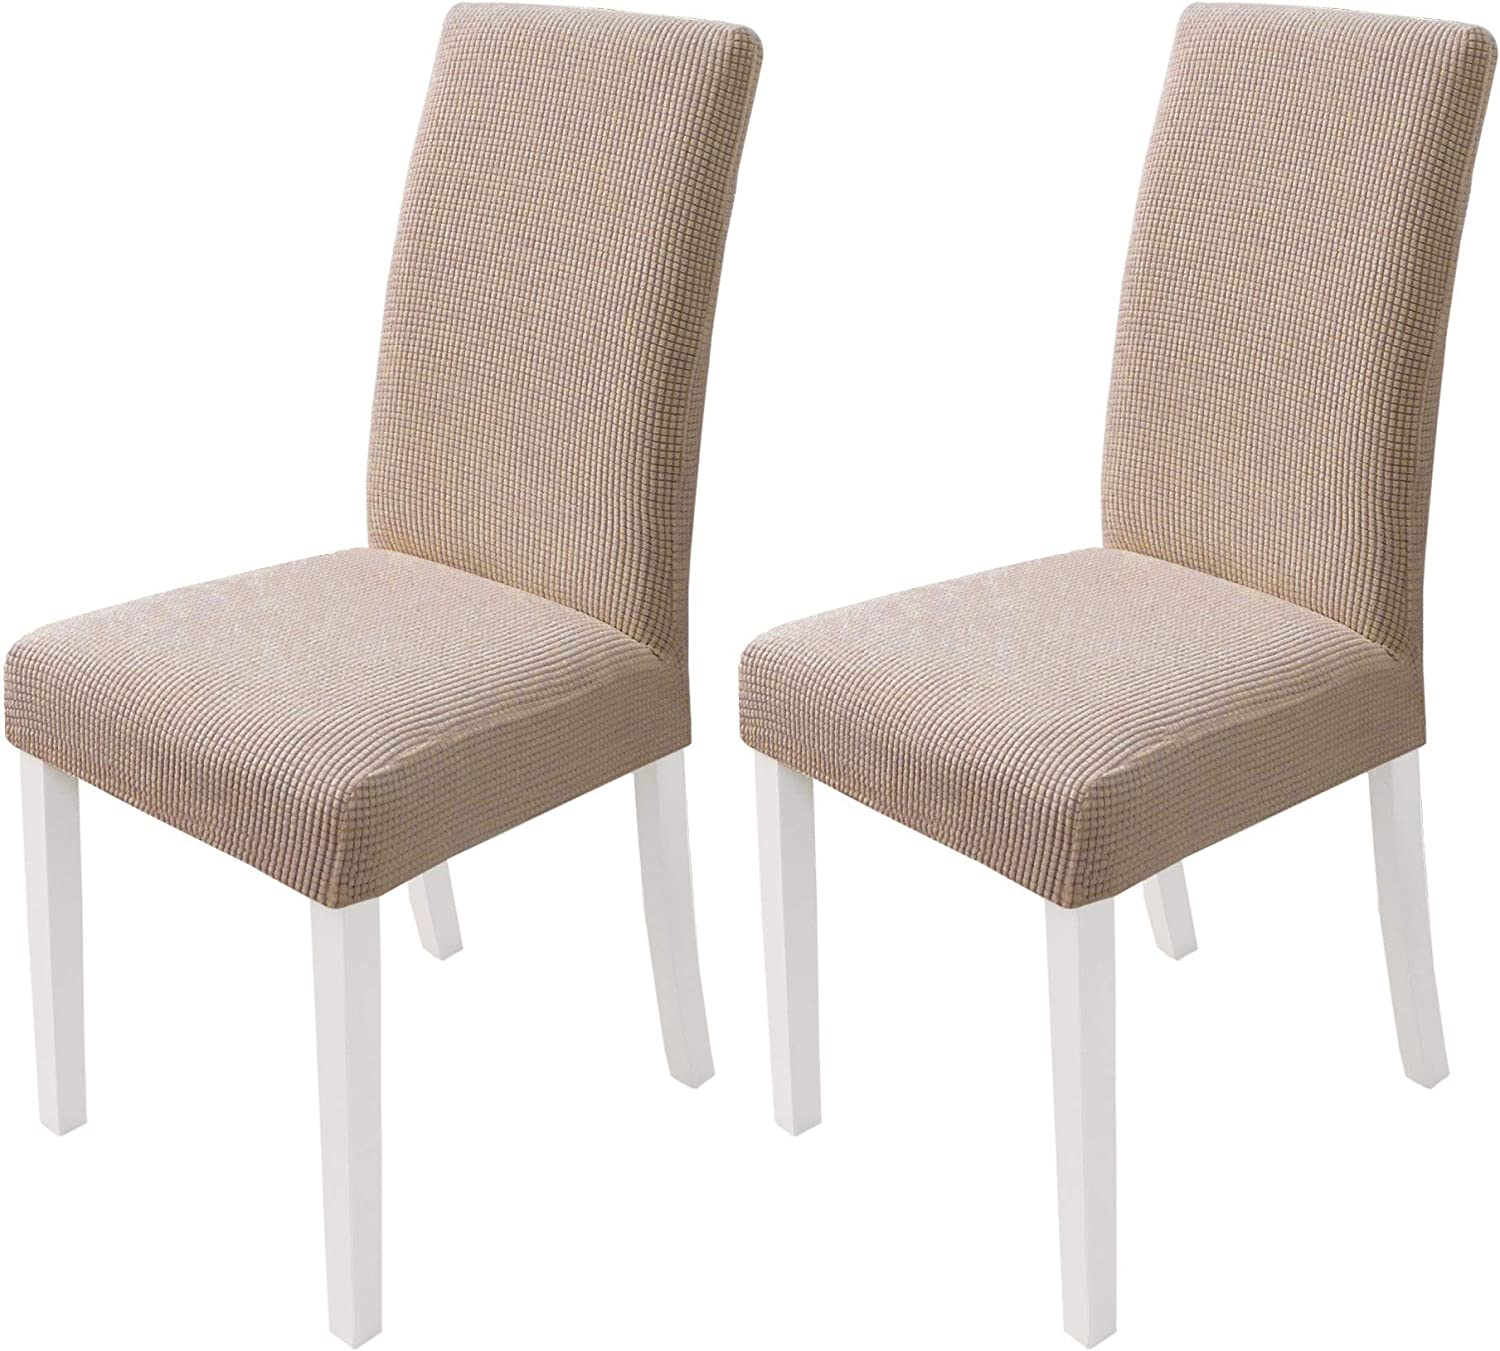 Simple Stretch Chair Cover High Elastic Seat Chair Cover Slipcover Home Decor